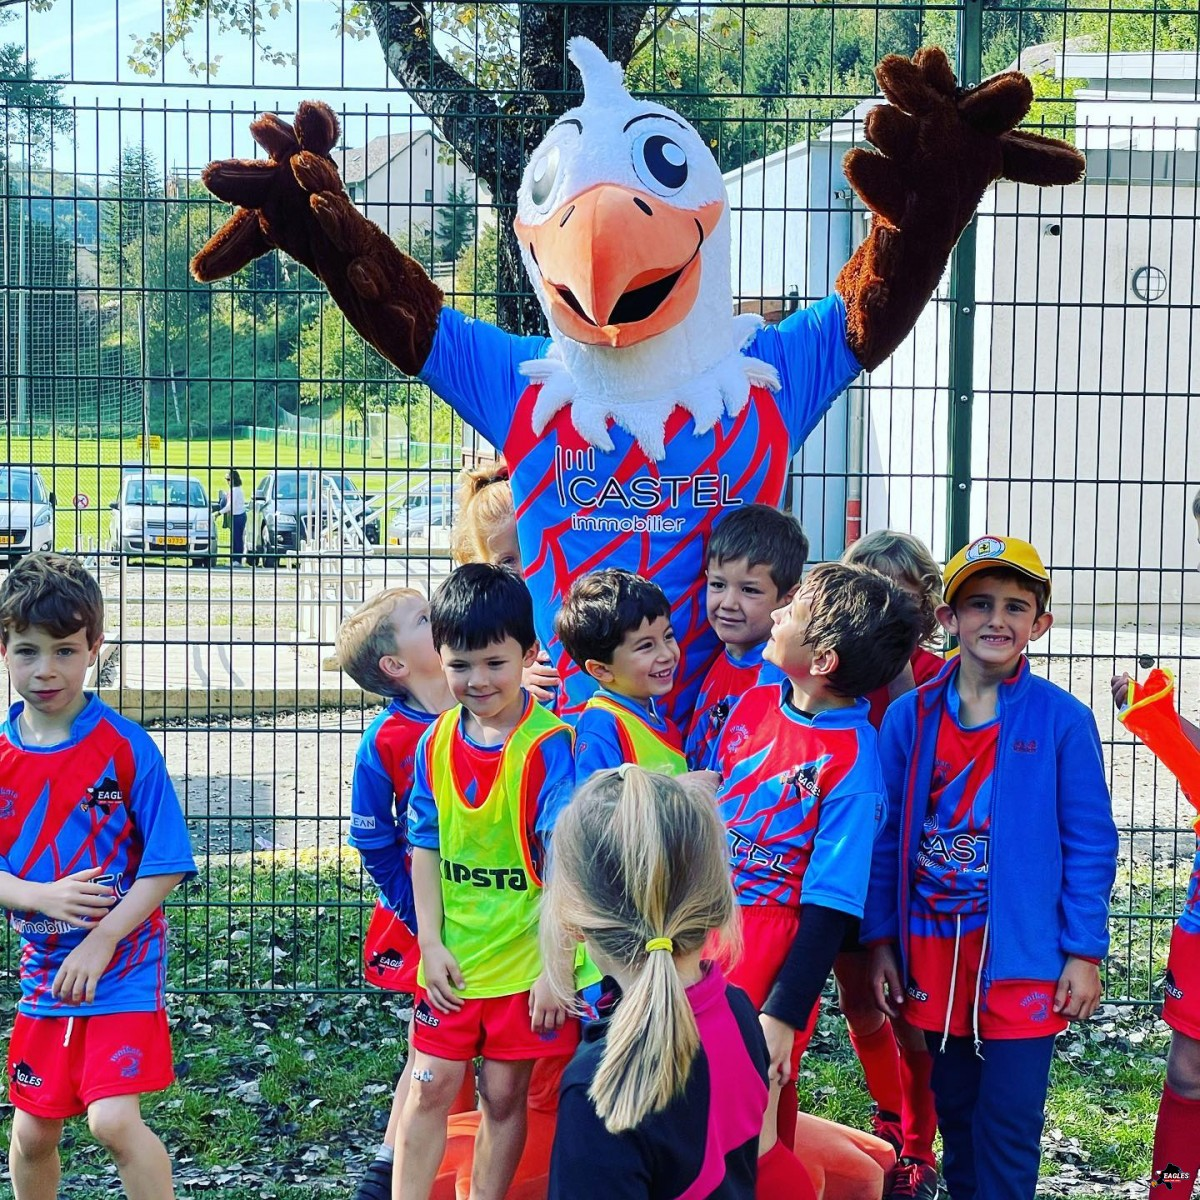 Children with Eagly, a key member of the Rugby Eagles Luxembourg